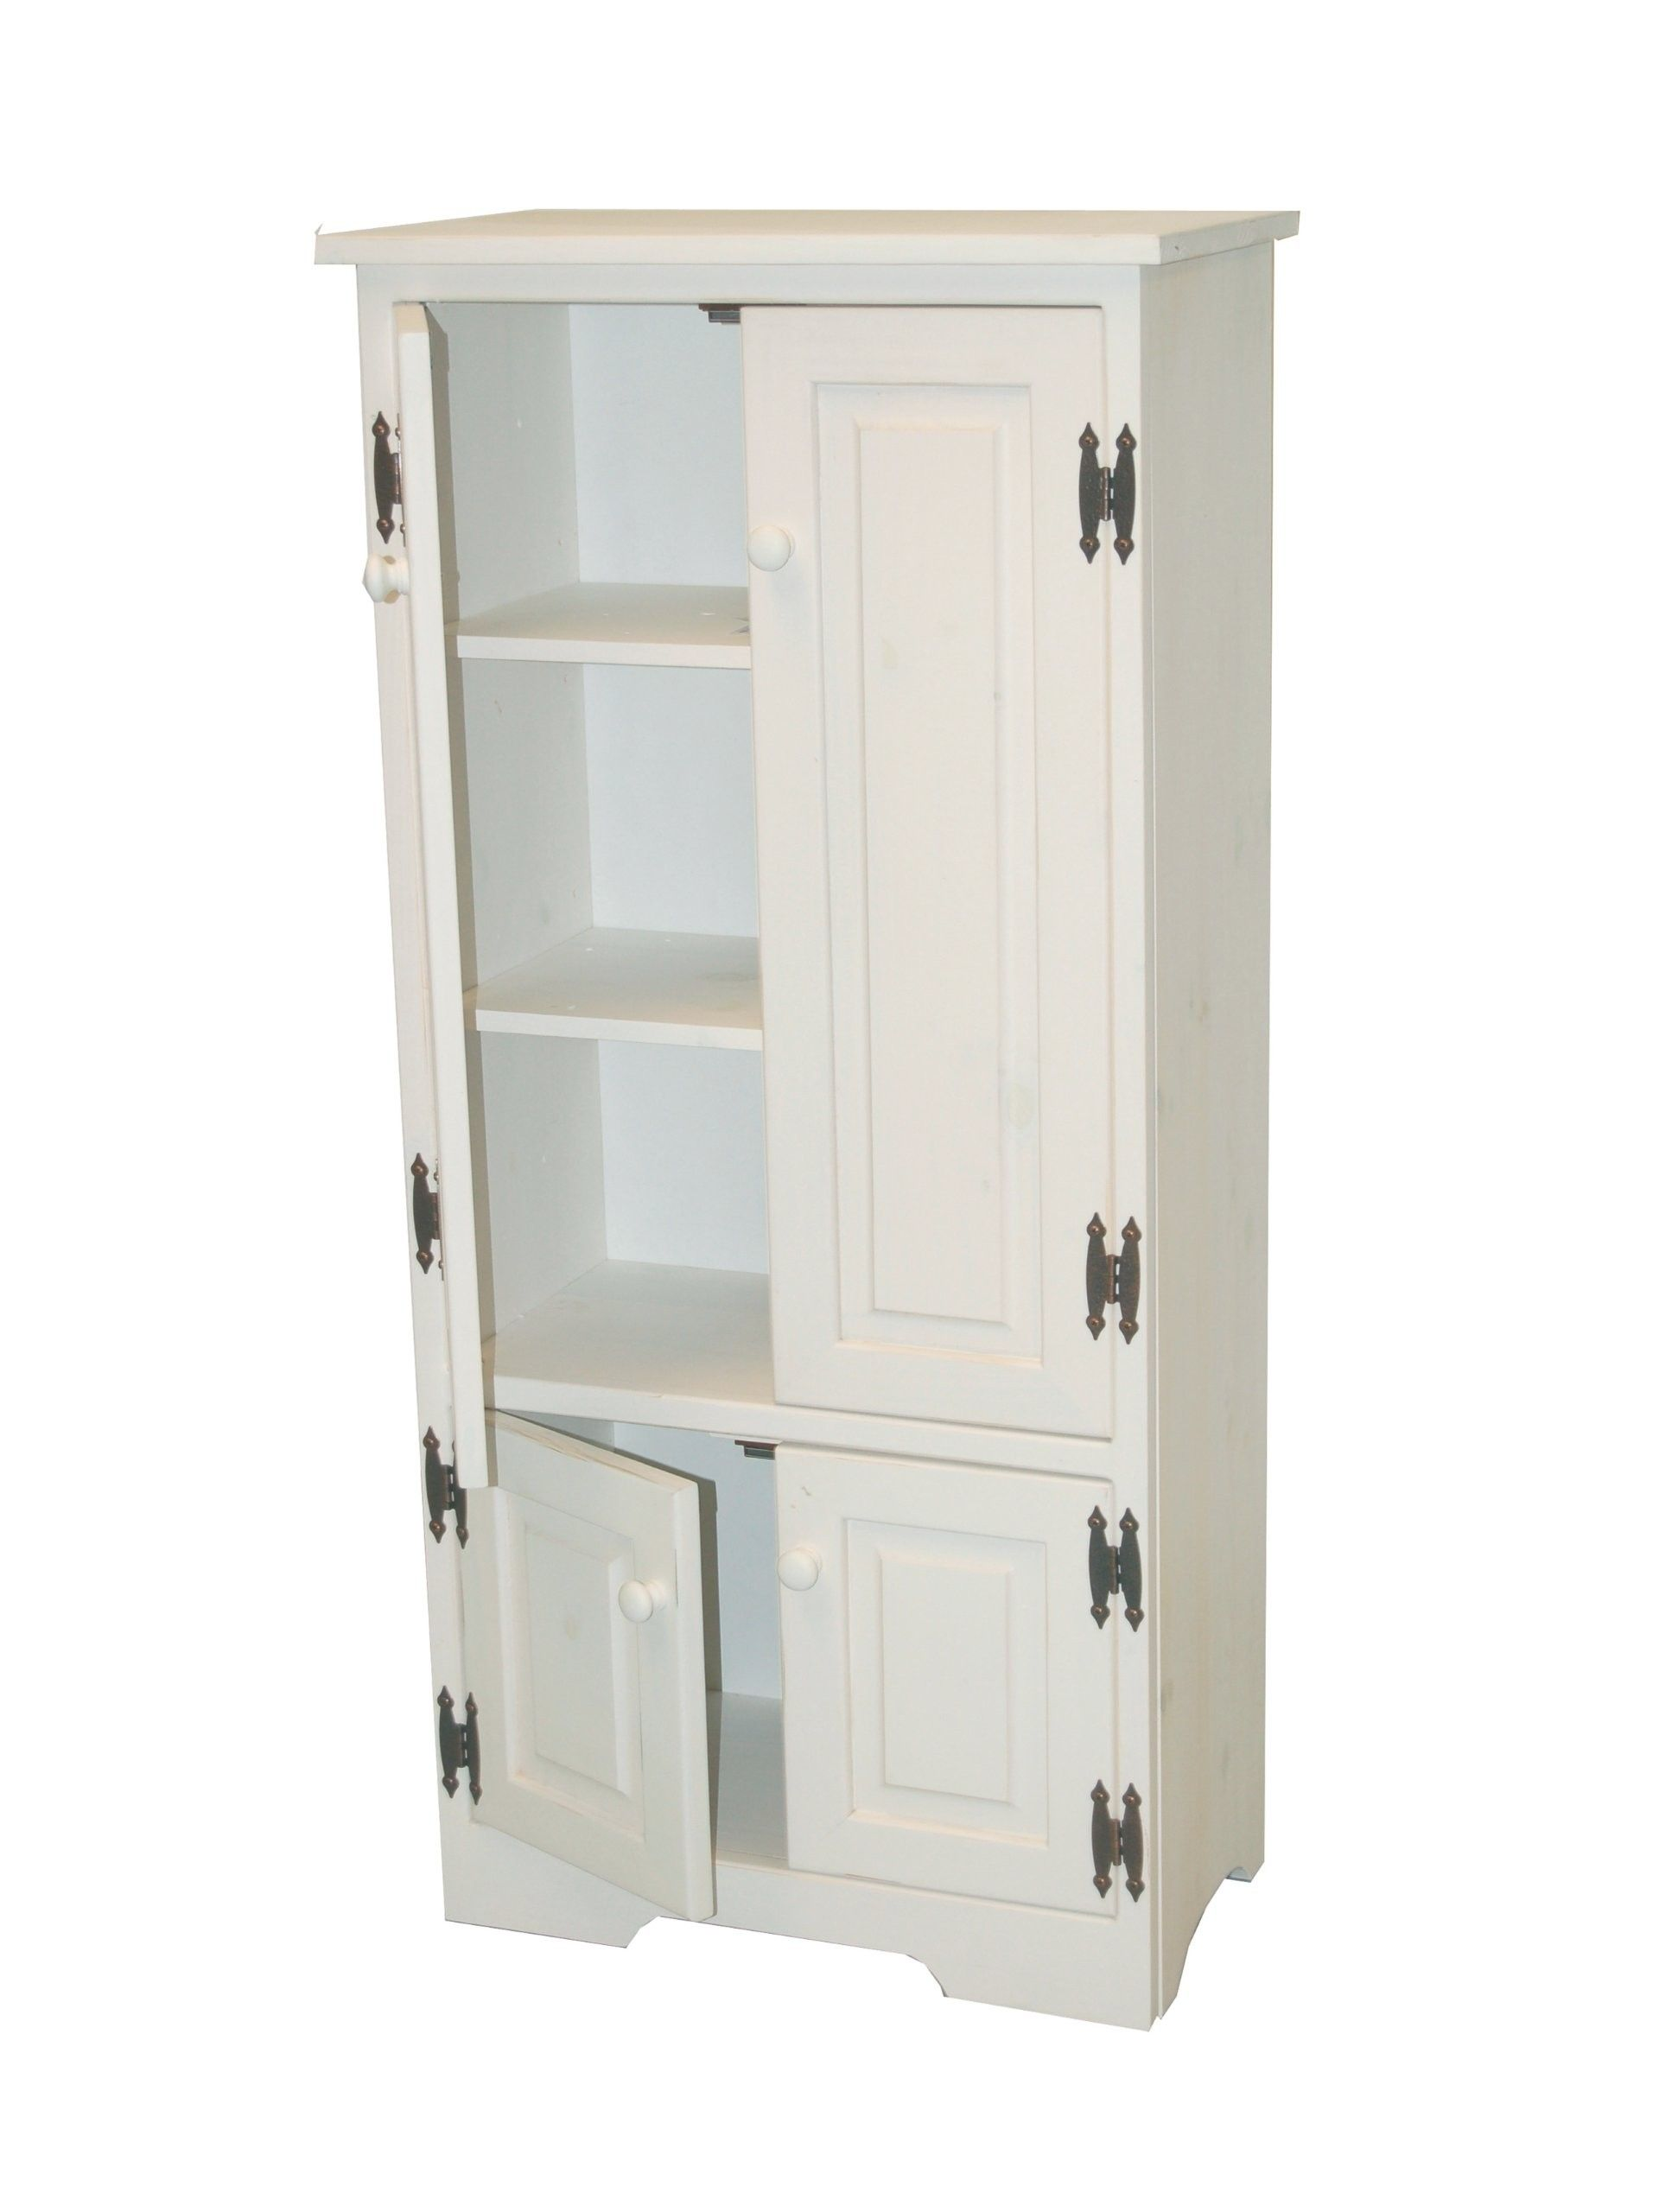 White Kitchen Storage Cabinets With Doors | http://advice-tips.com ...